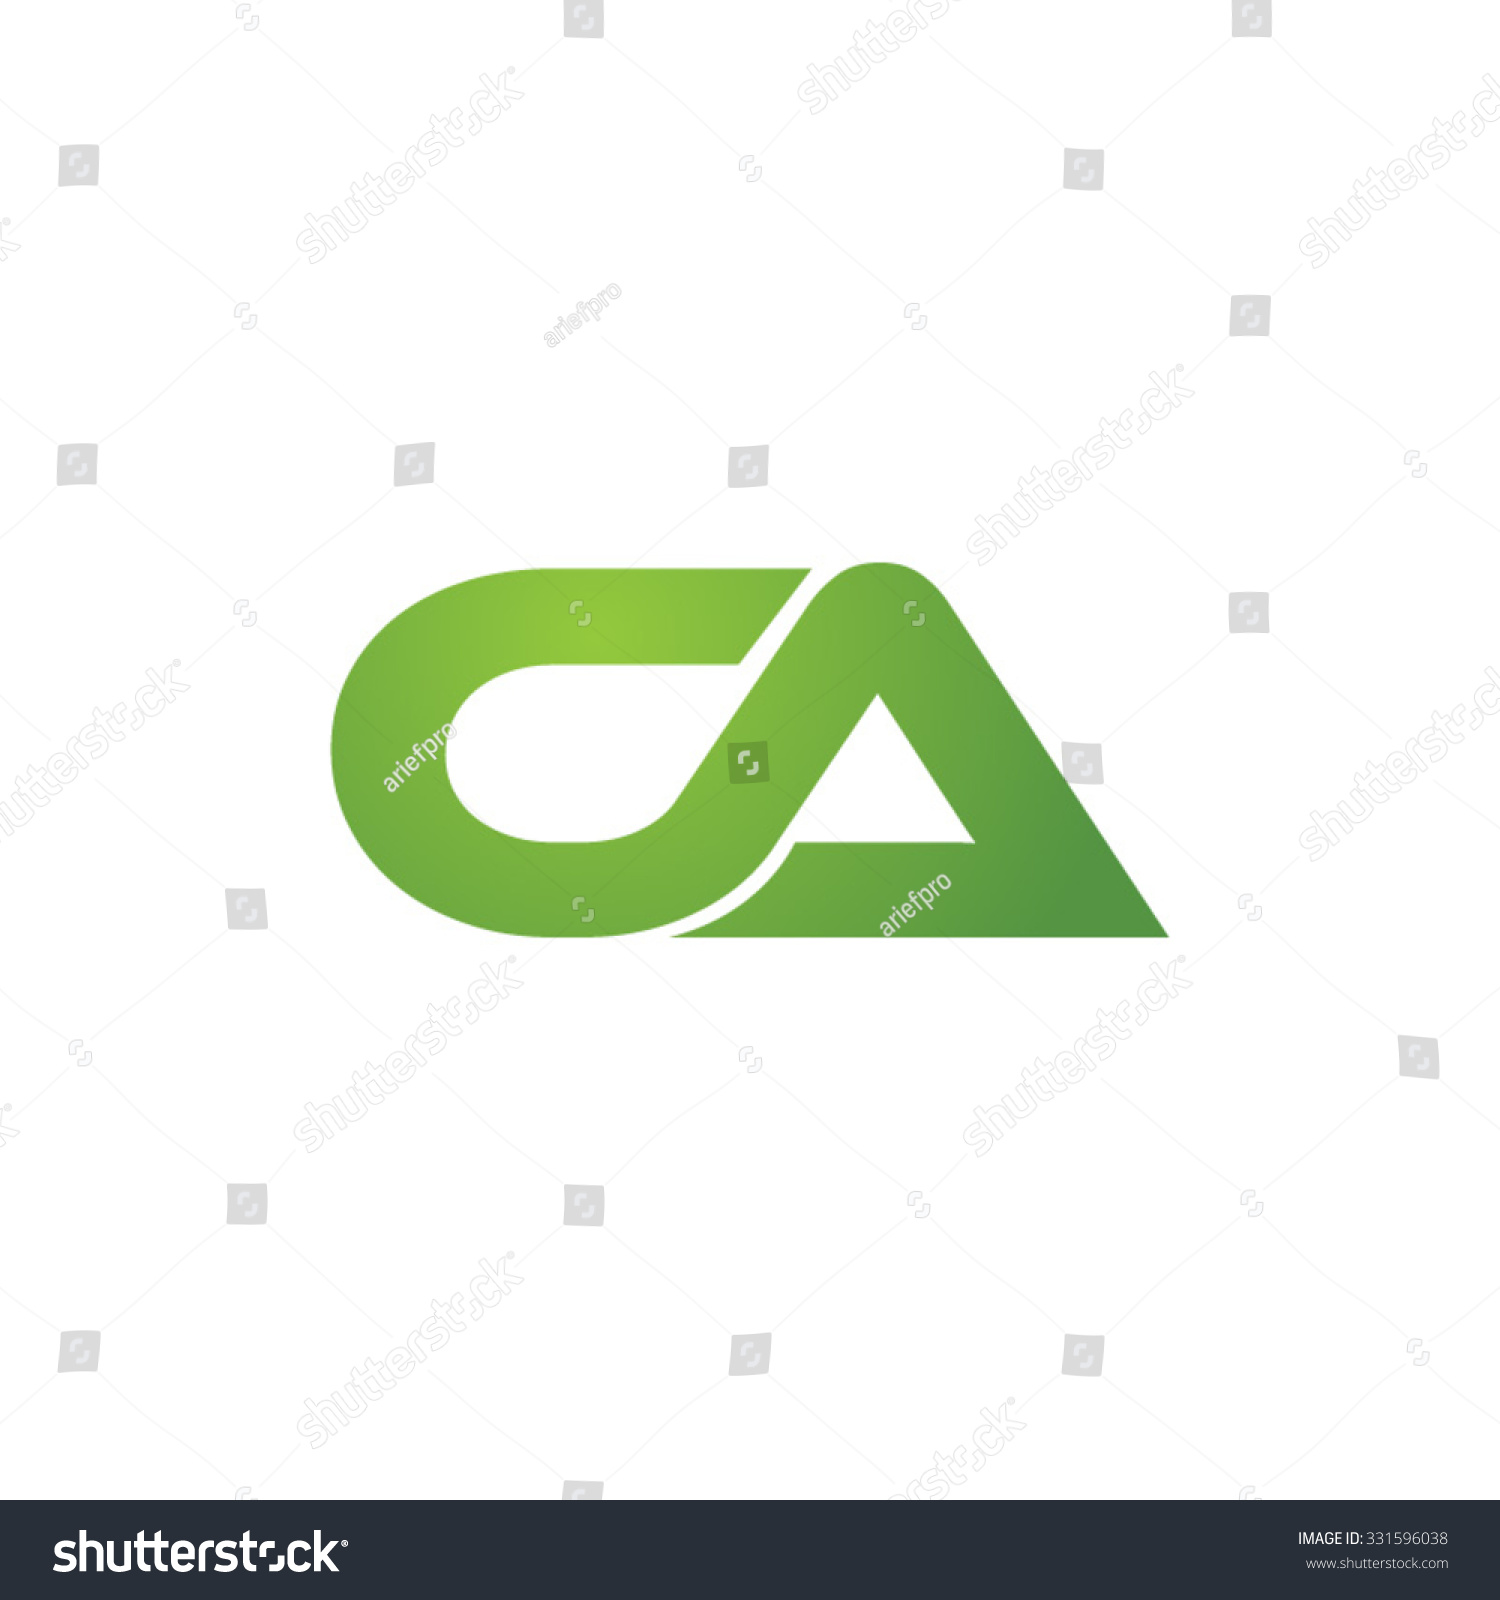 Ca company linked letter logo green stock vector 331596038 ca company linked letter logo green biocorpaavc